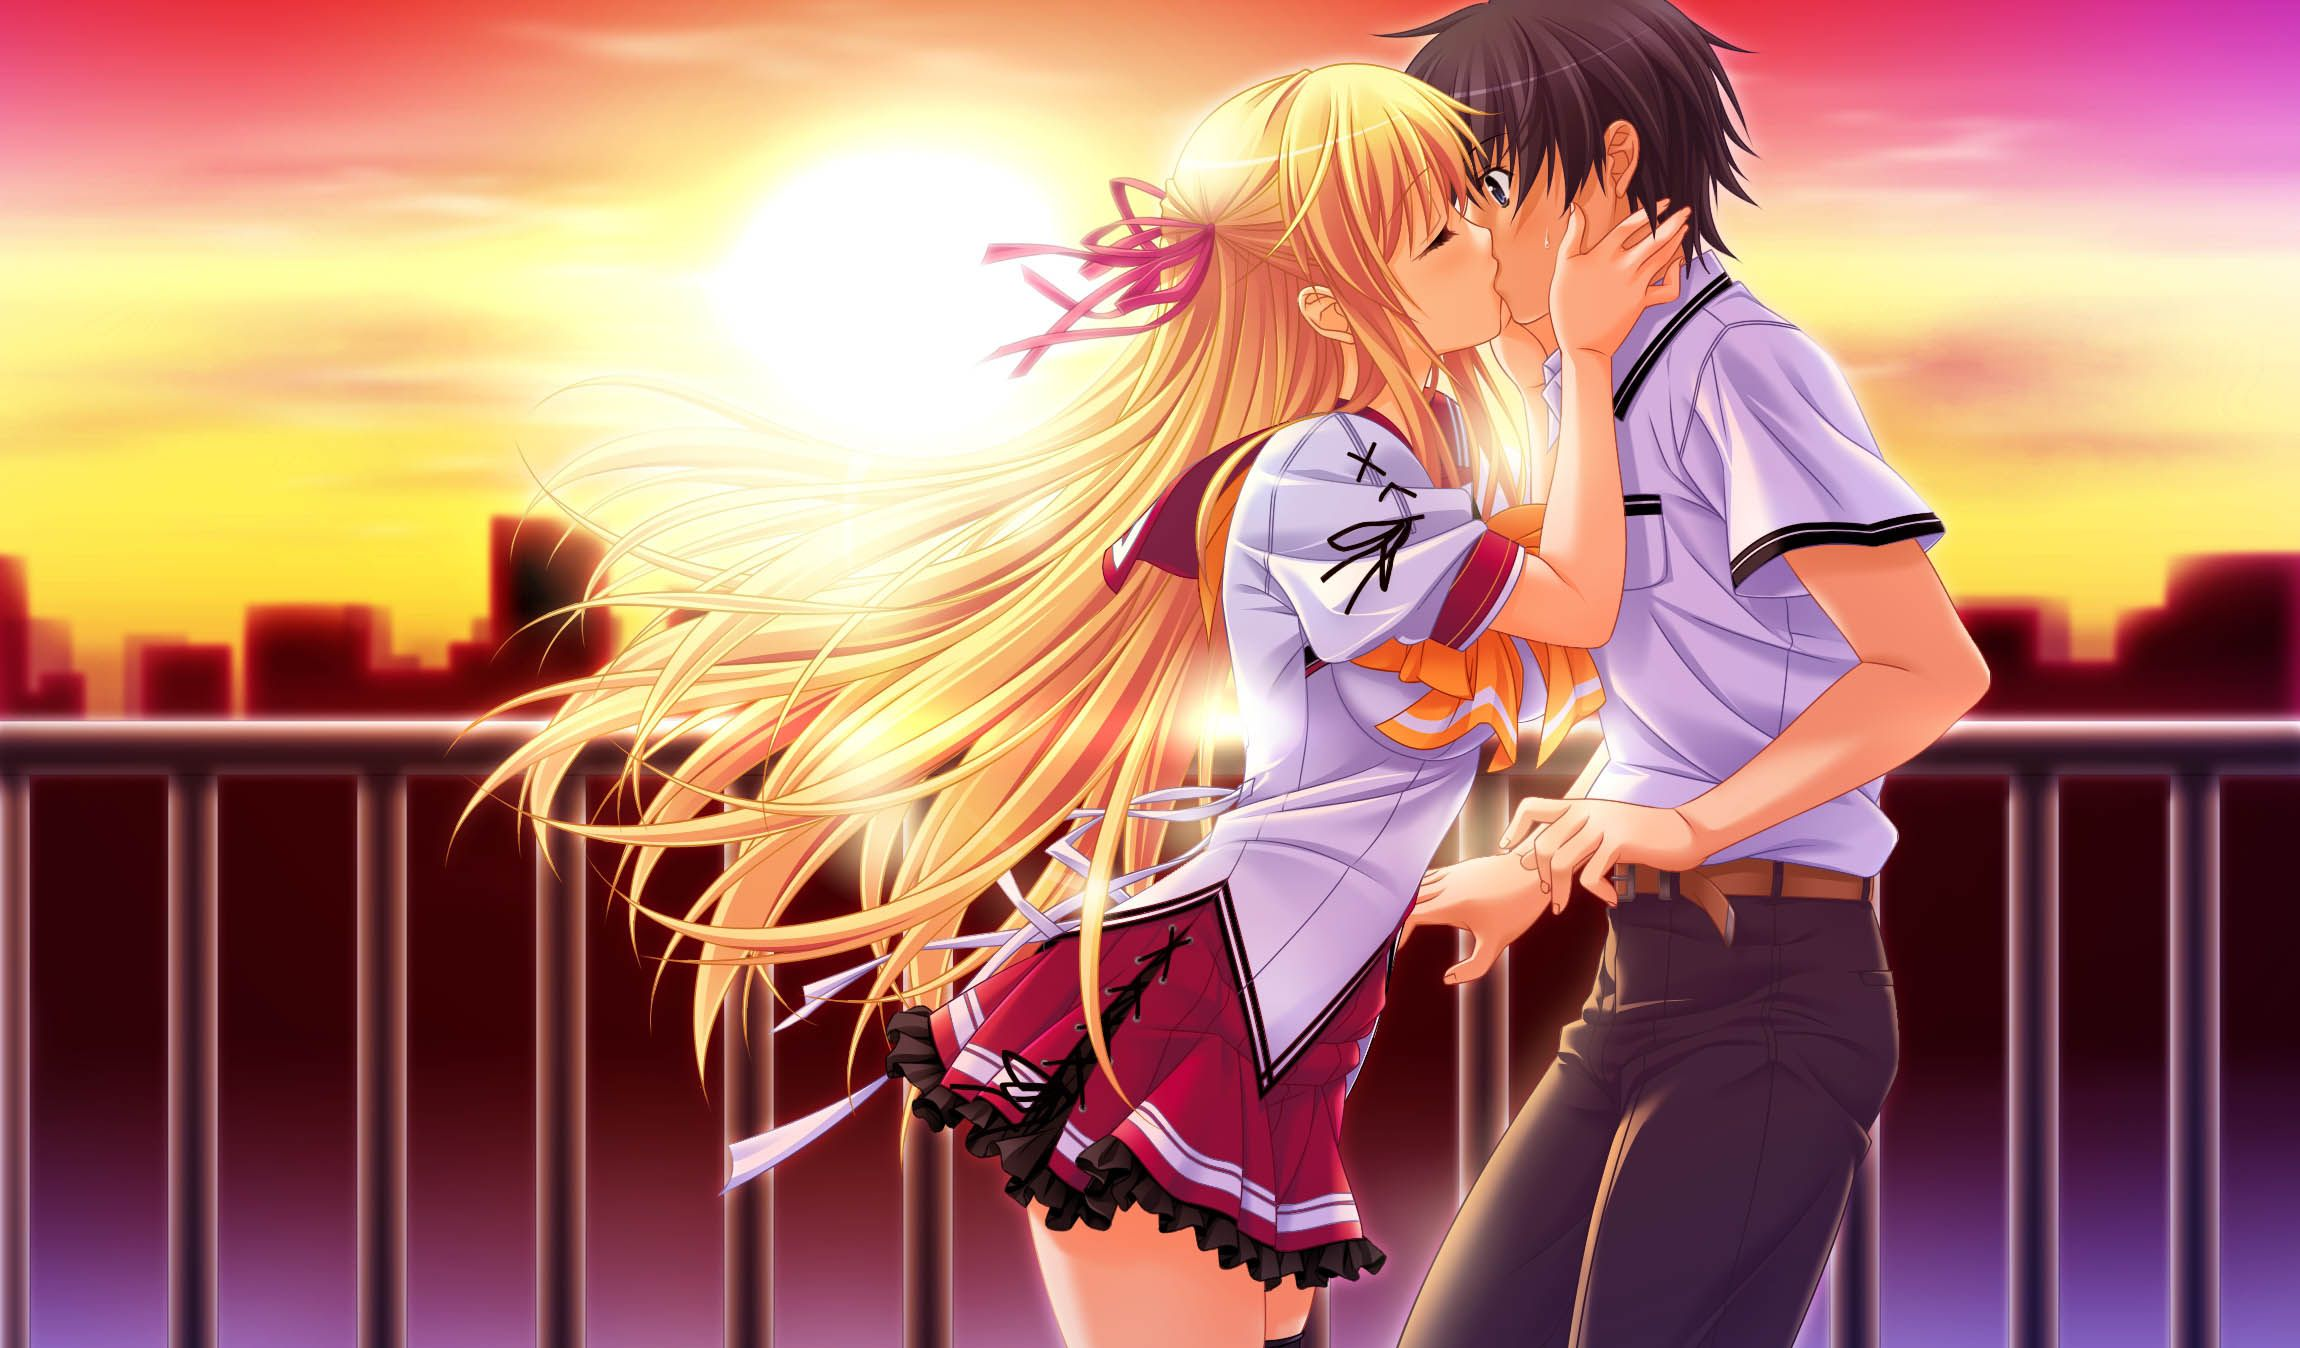 Beautiful anime kisses anime kiss passion love beauty